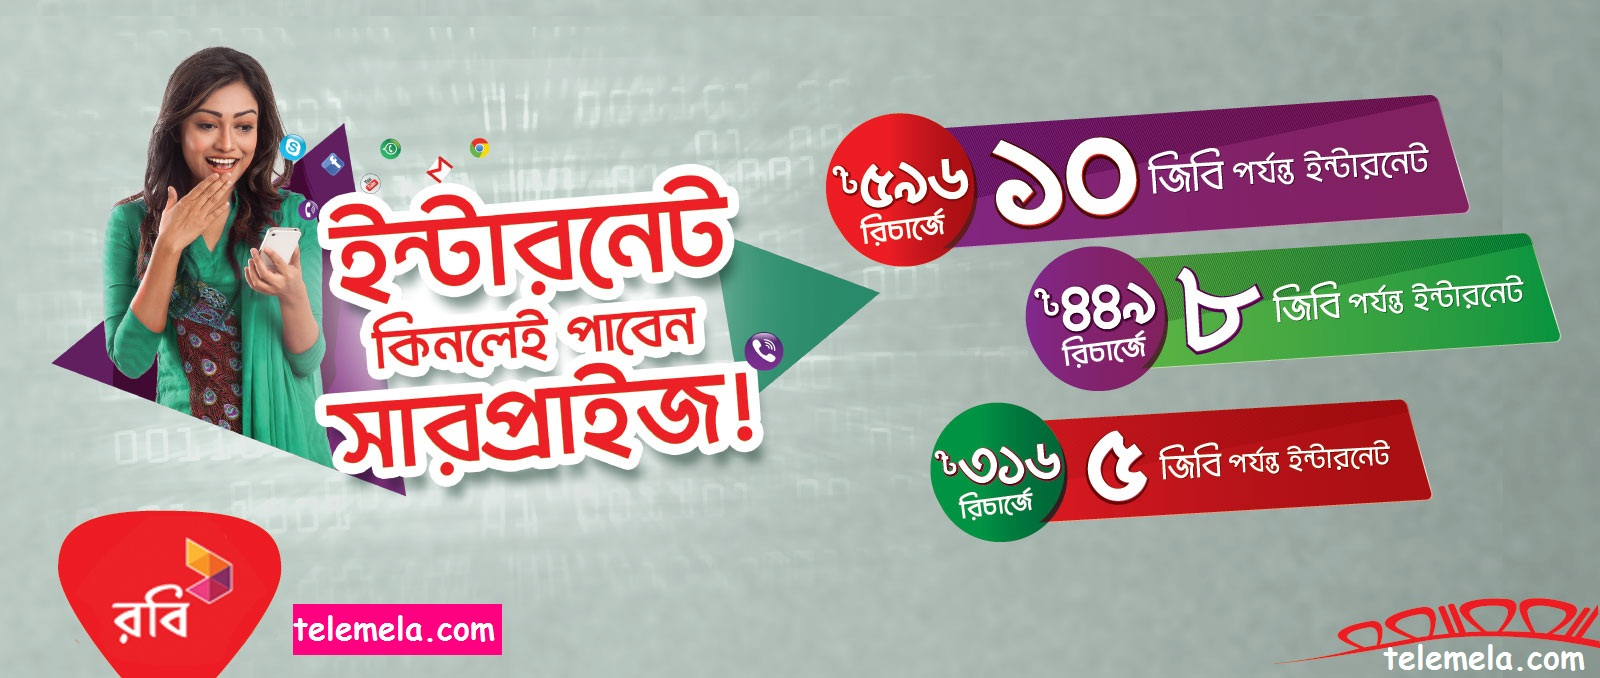 Robi Surprise Internet Pack Offer